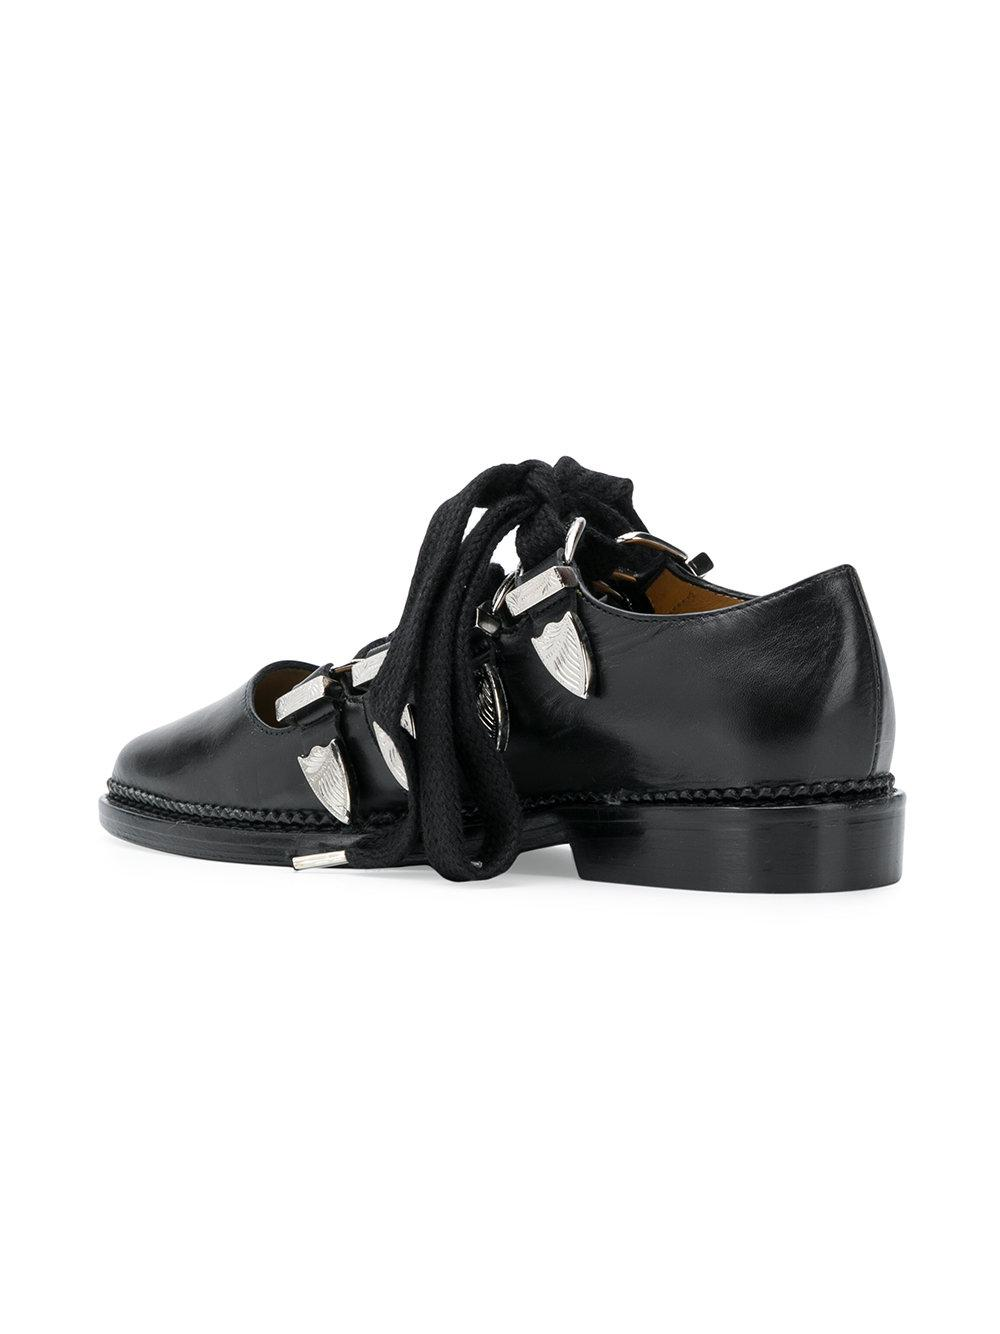 Black Pulla Pumps Lyst Up Toga In Lace wxYCCfzqv